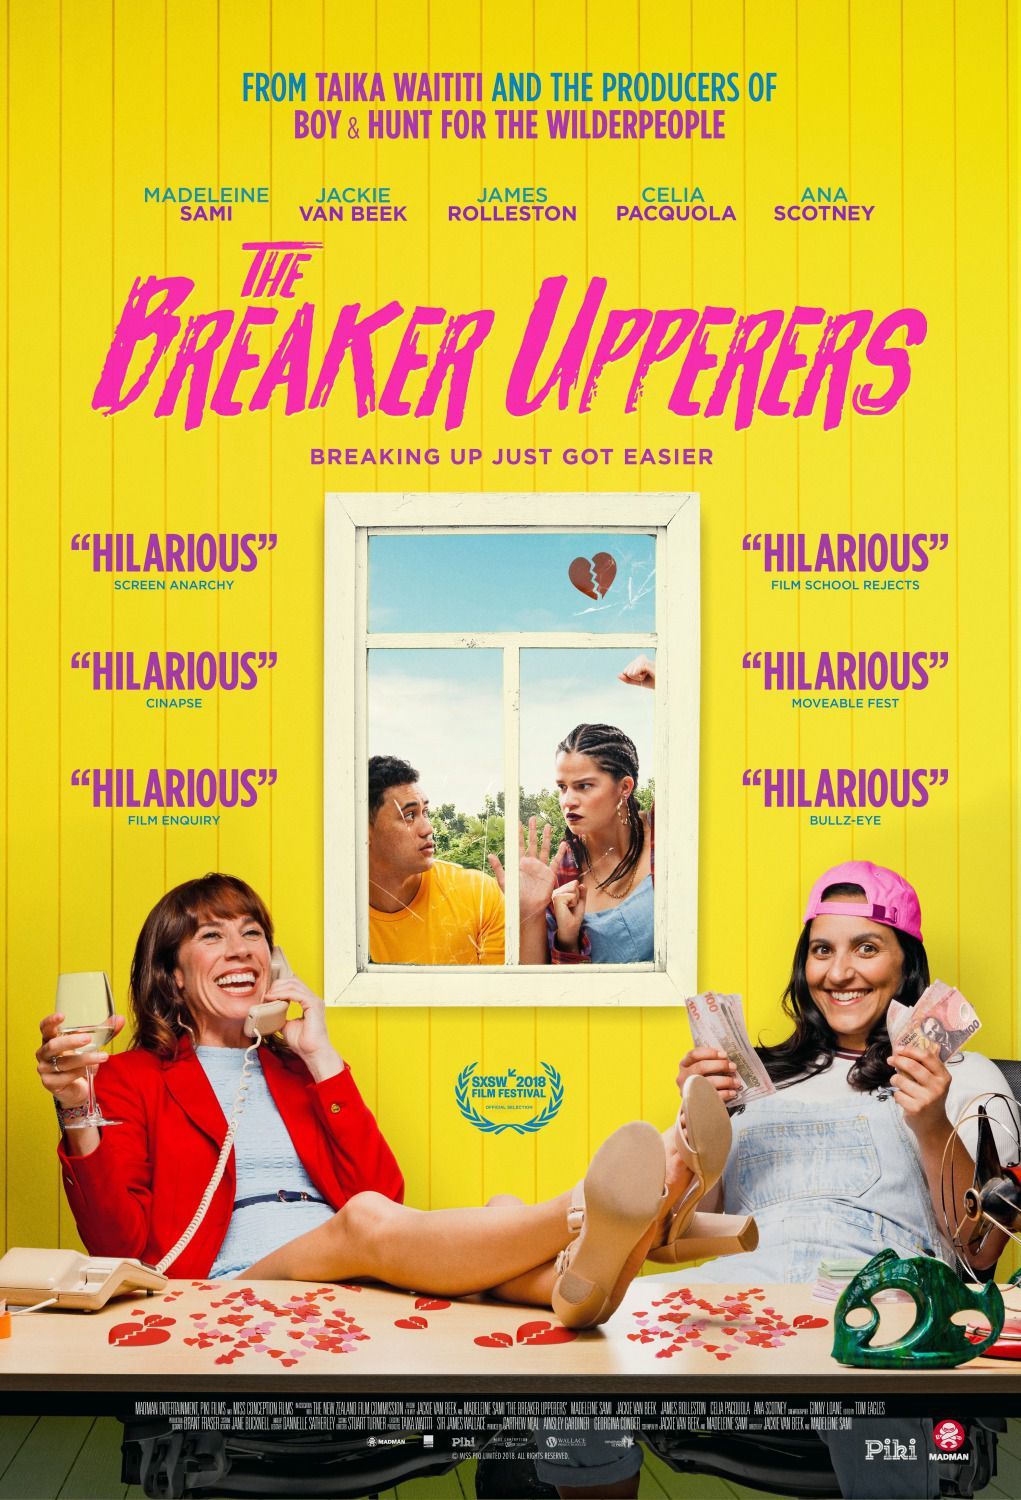 Breaker Upperers - Breaking up just got easier - Cast: Madeleine Sami, Jackie Van Beek, James Rolleston, Celia Pacquola, Ana Scotney - film poster